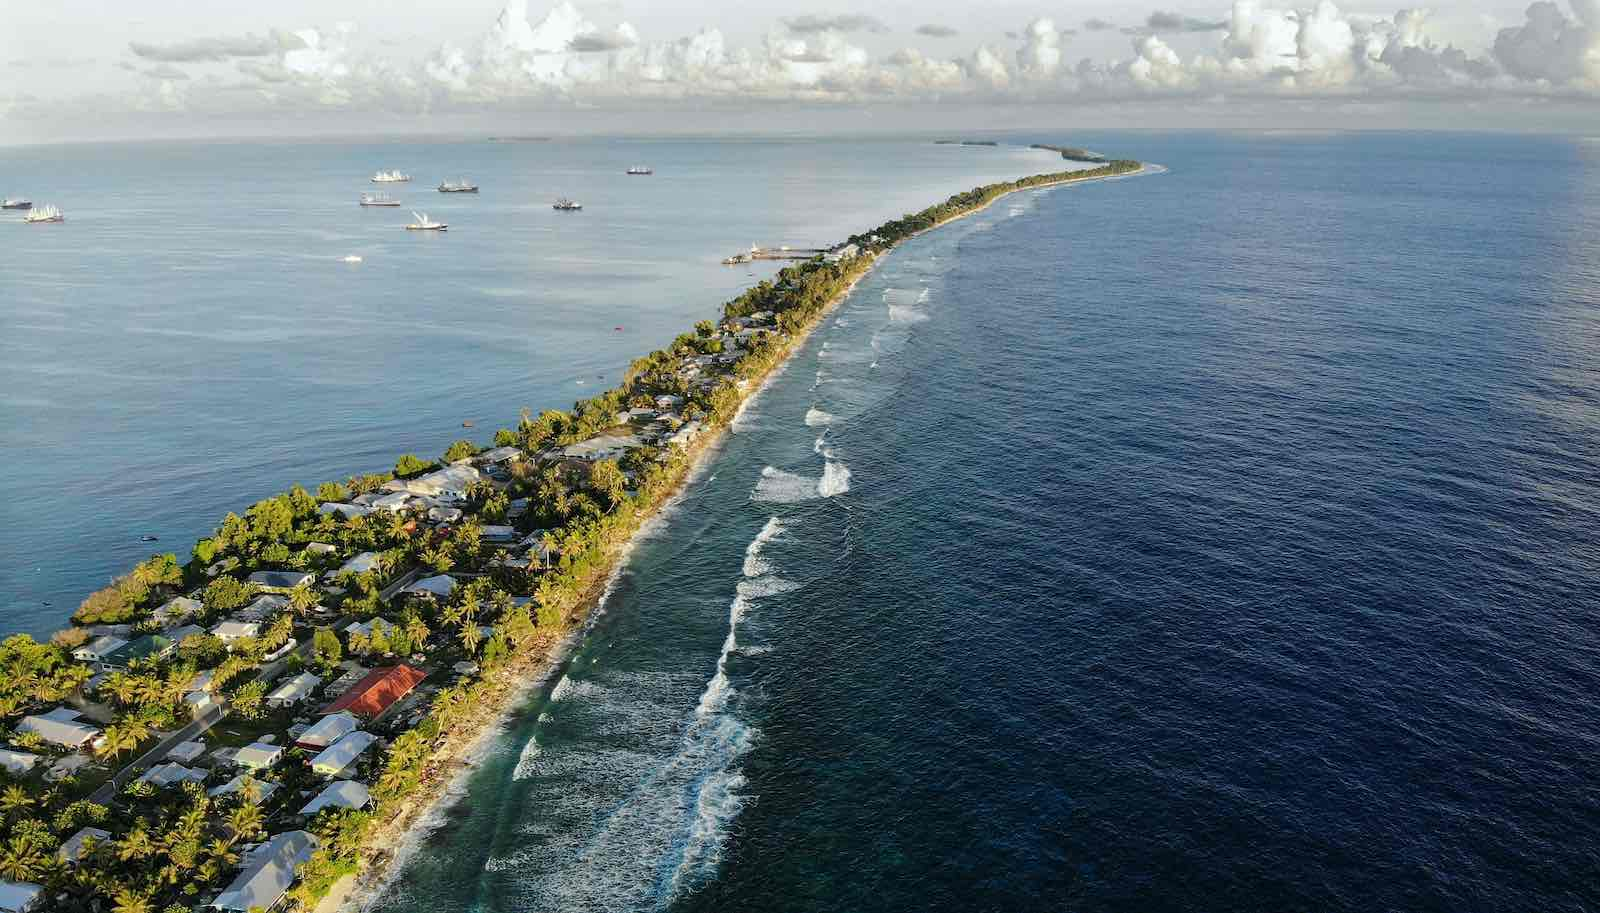 Funafuti Island in Tuvalu, which hosted the Pacific Islands Forum meeting in 2019 (Mario Tama/Getty Images)